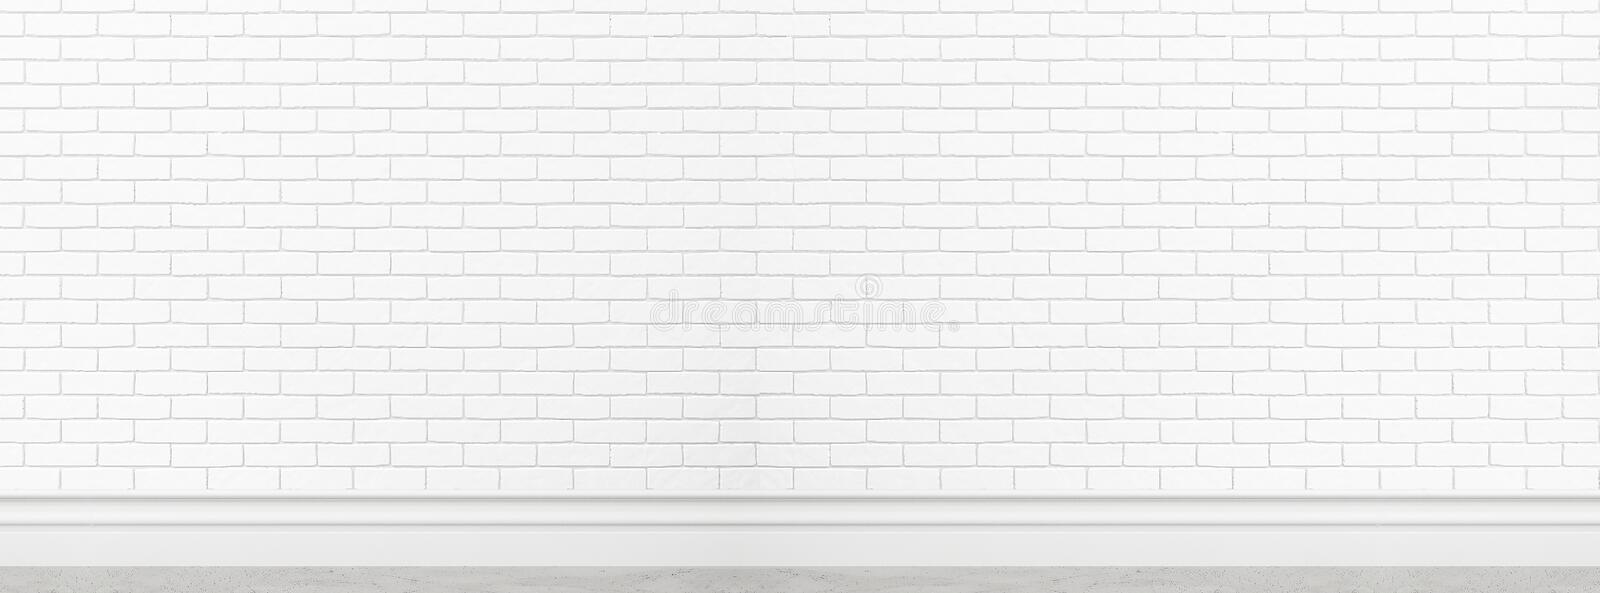 Old white brick wall texture for background usage as backdrop wide screen banner design mockup royalty free stock photos